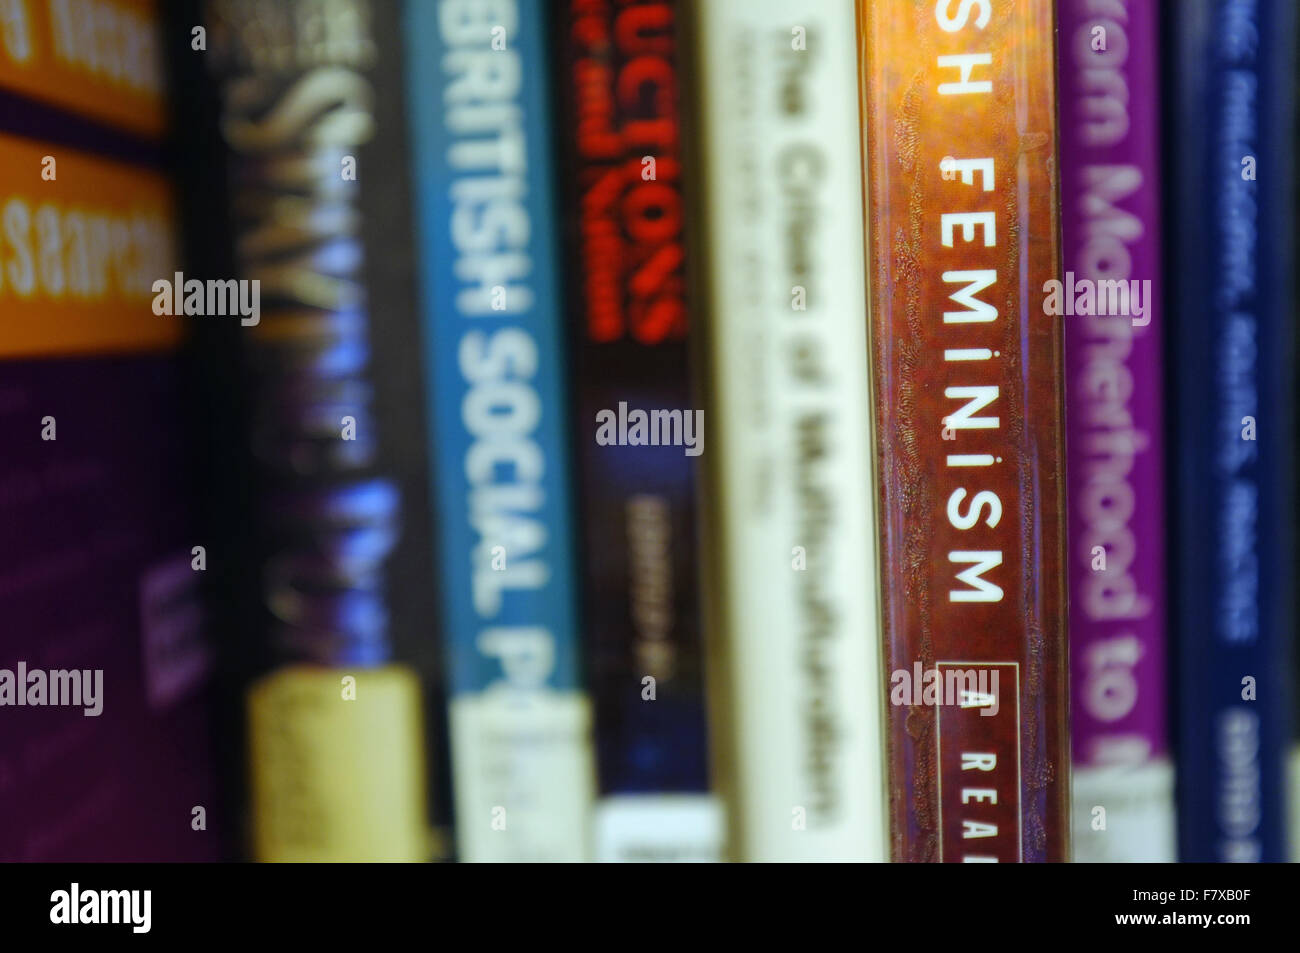 The spine of a Feminism book pulled out on a bookshelf. - Stock Image